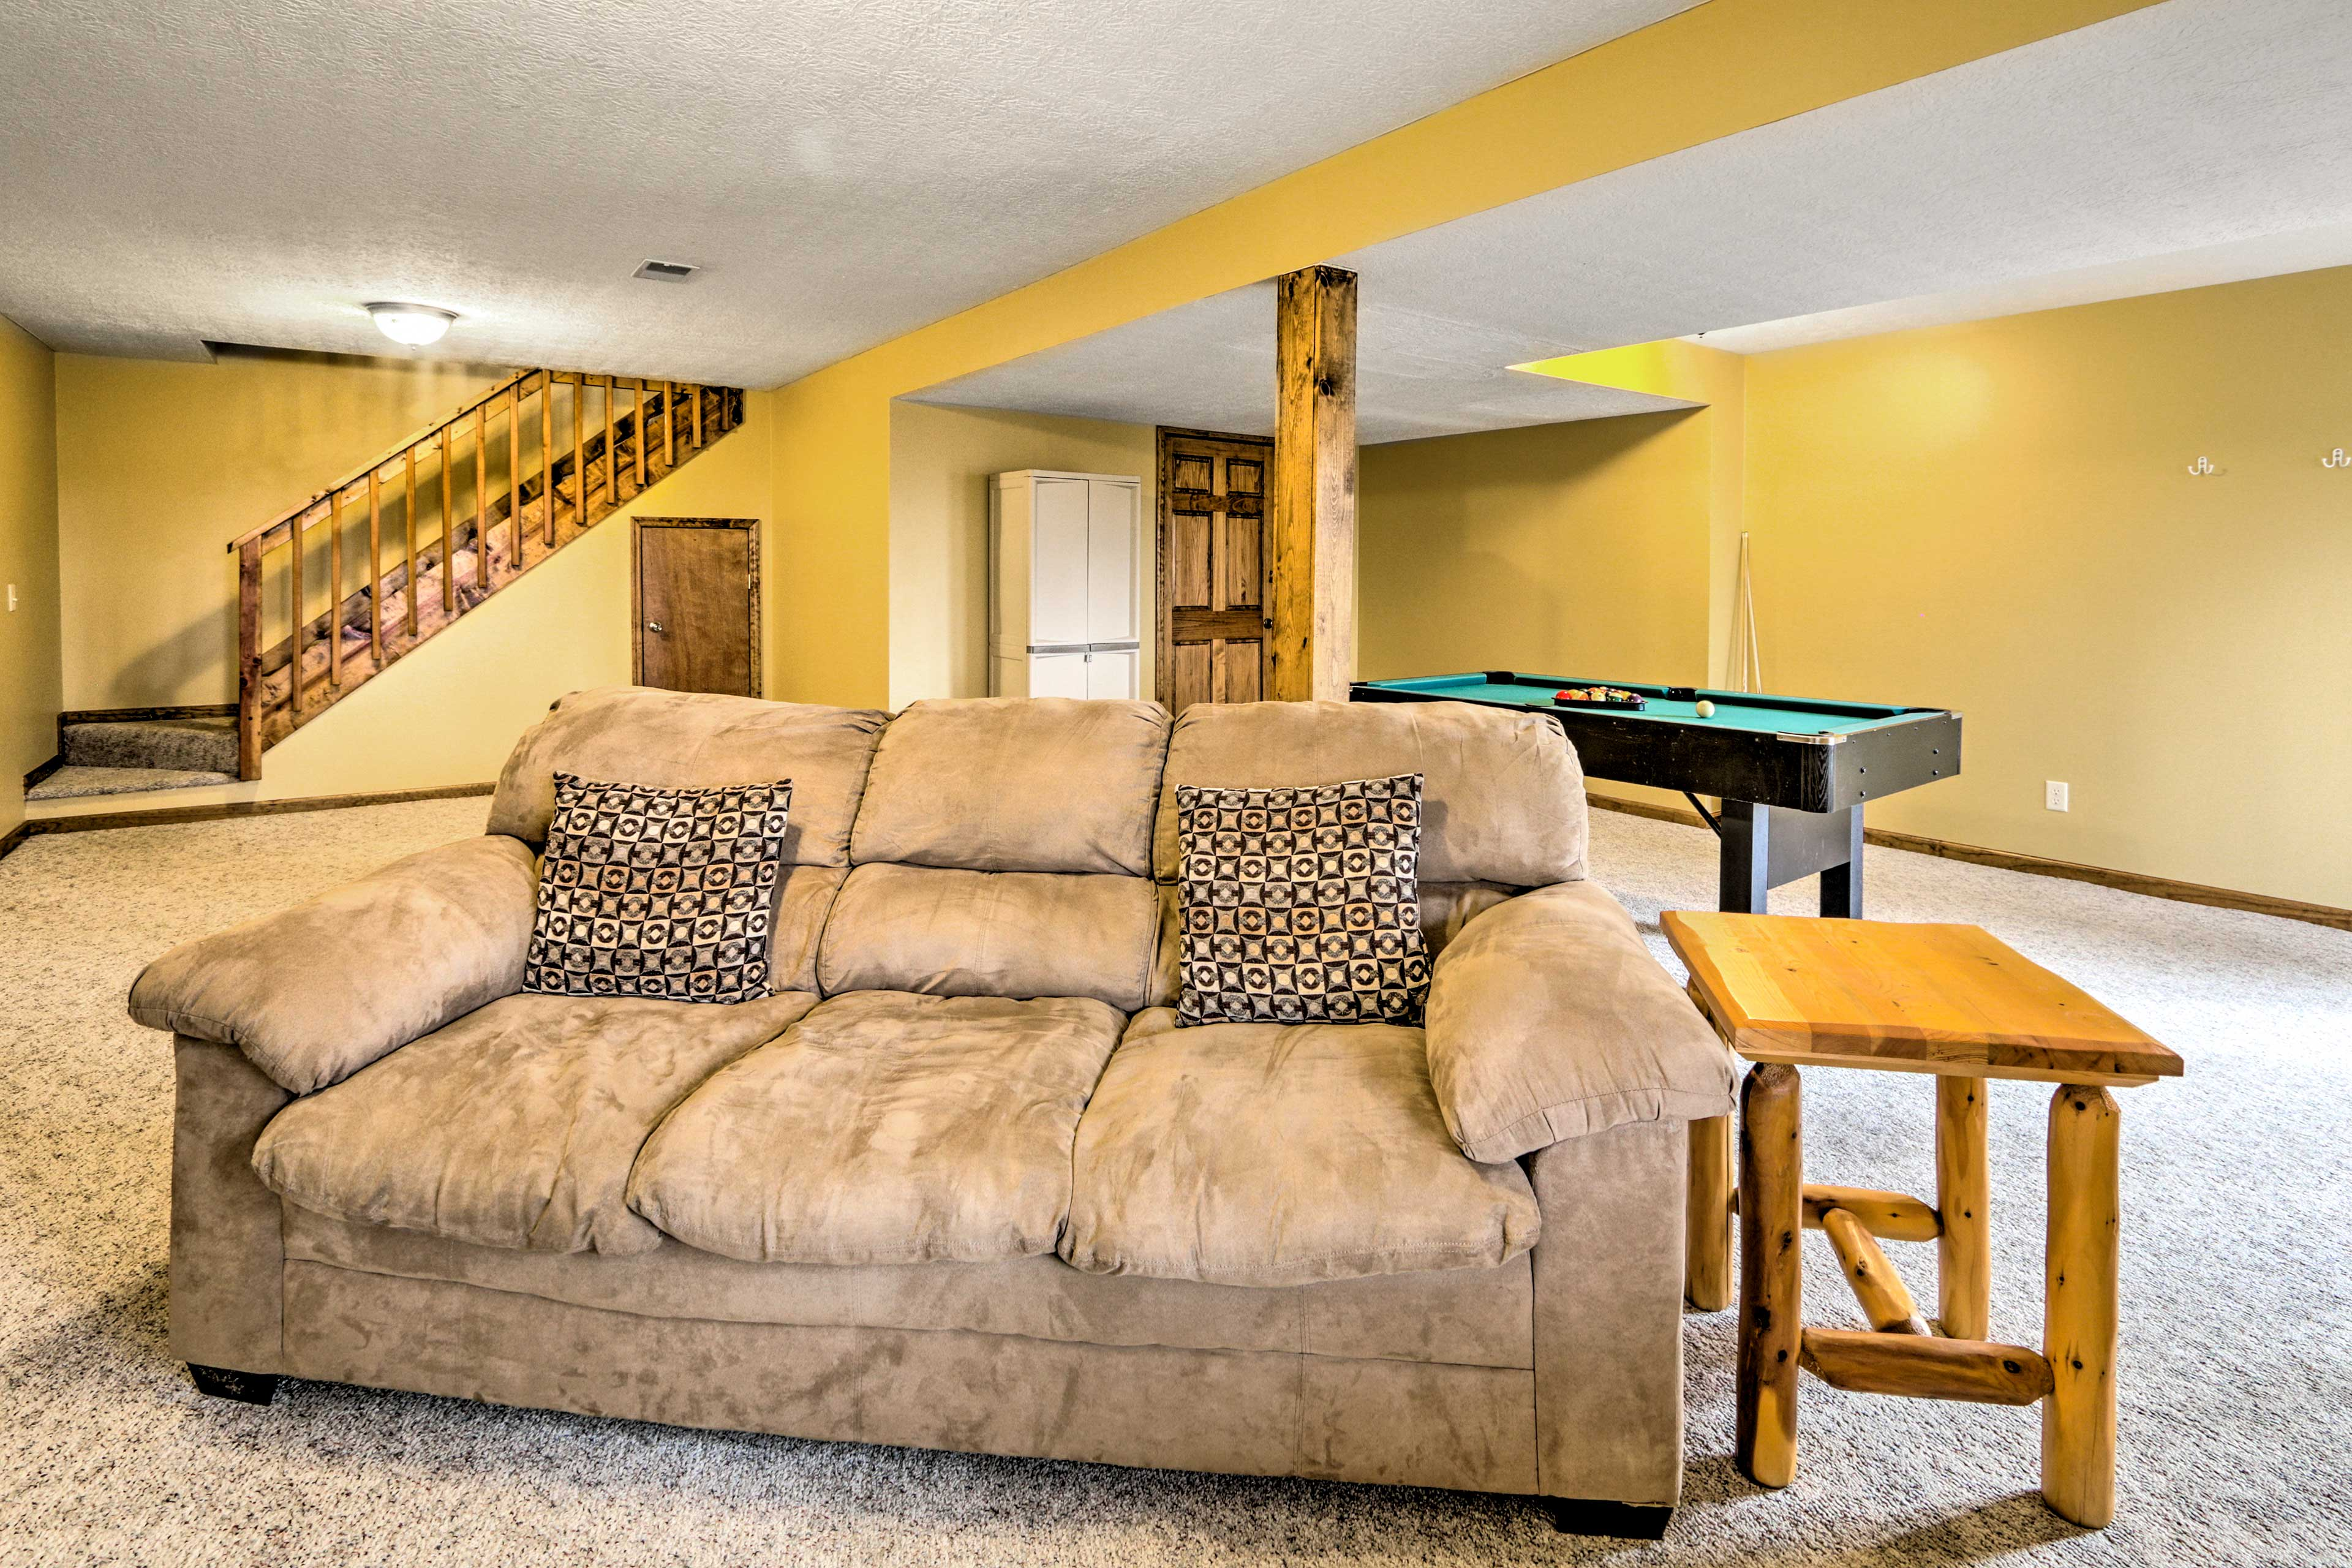 Head downstairs to discover a spacious living area complete with a pool table.